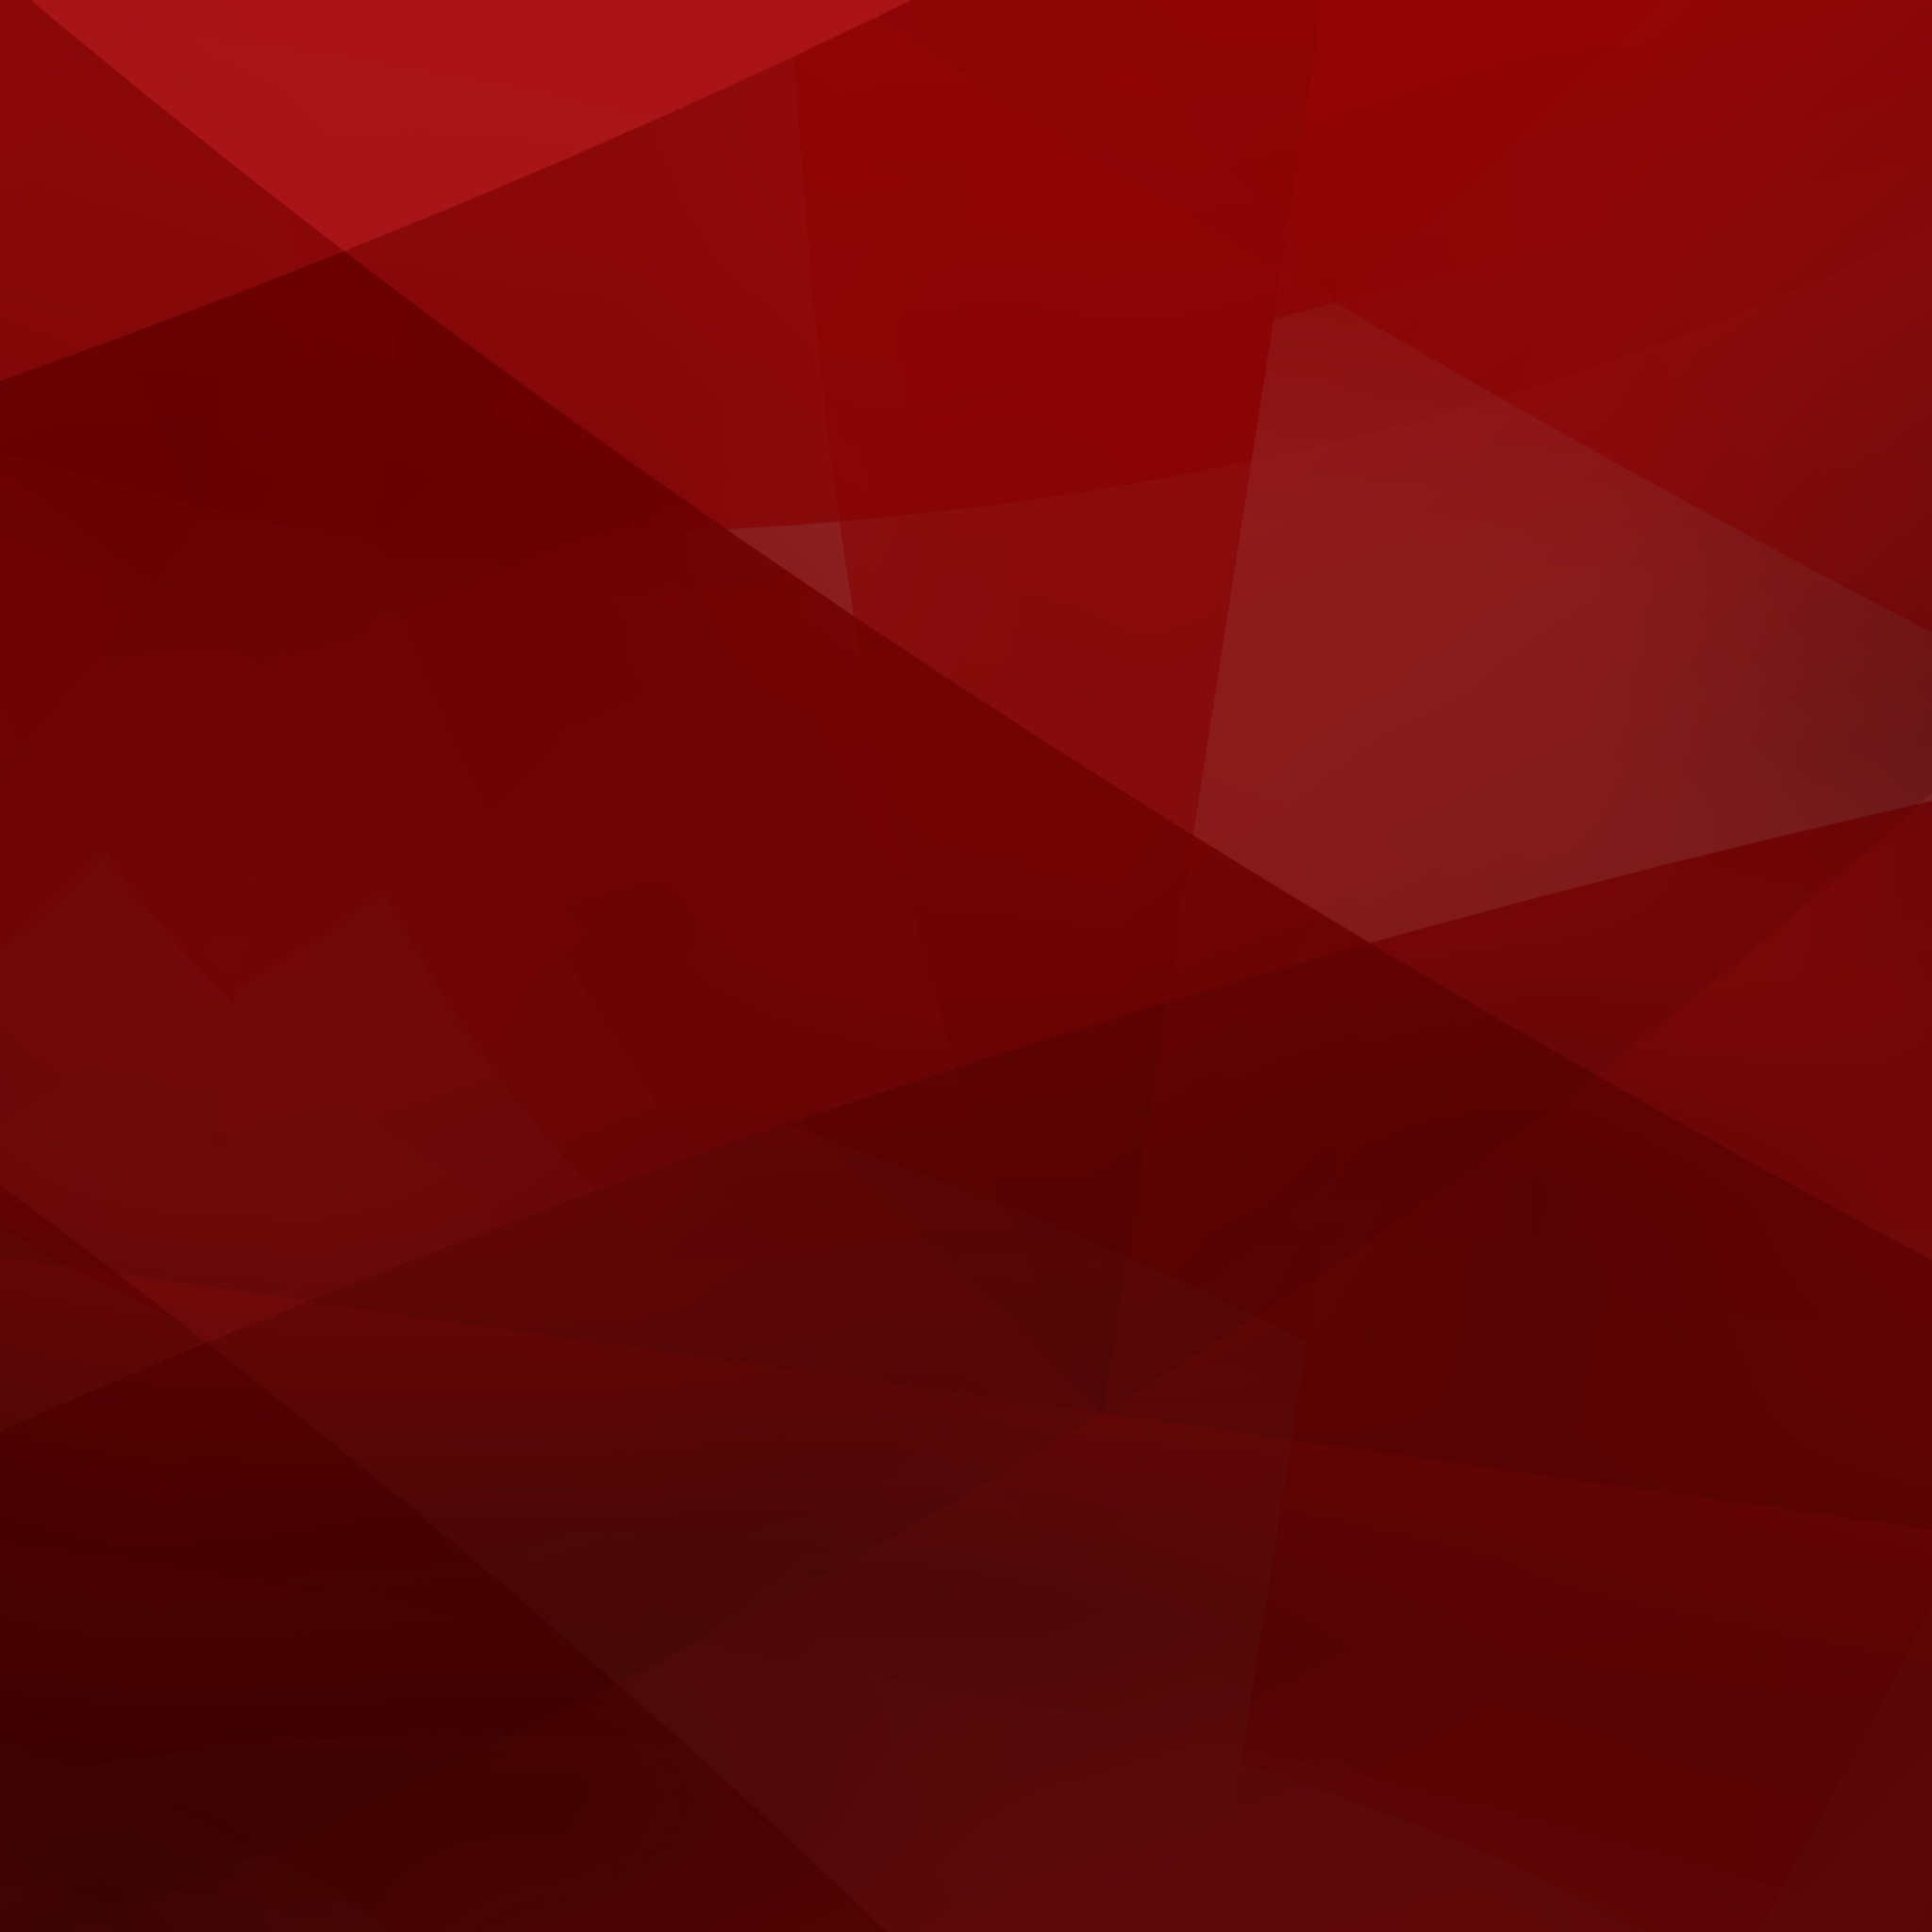 Newest iPad 3 wallpapers Abstract Wallpapers Red Color 2048x2048